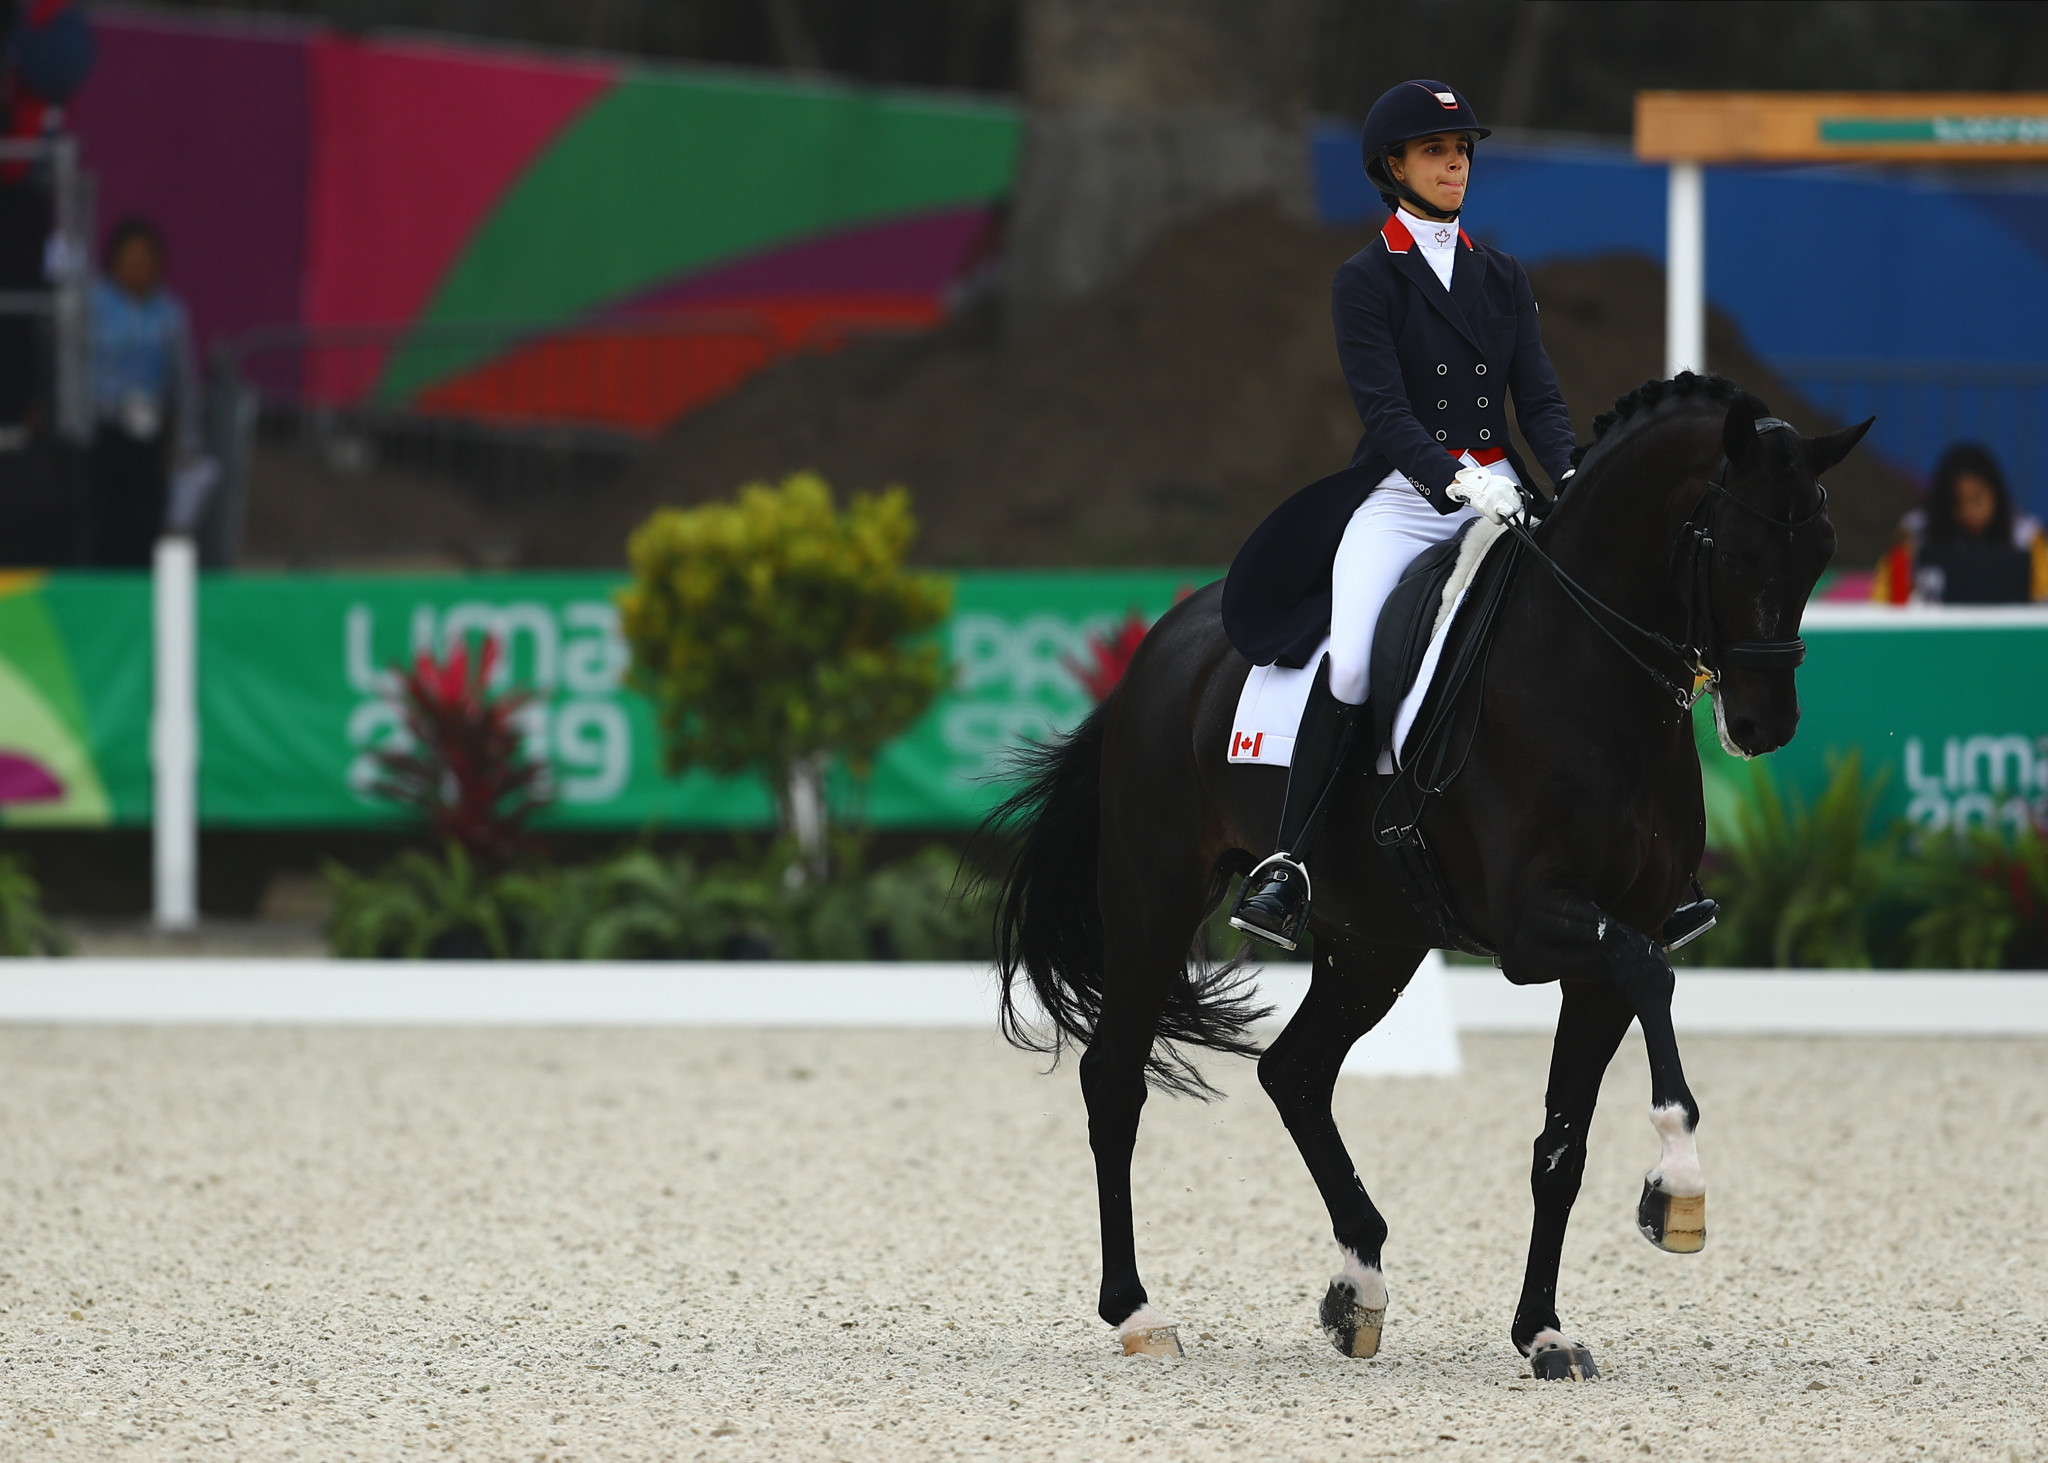 The FEI have reportedly expressed interest in staging competitions in Lima after the Pan American Games ©Getty Images